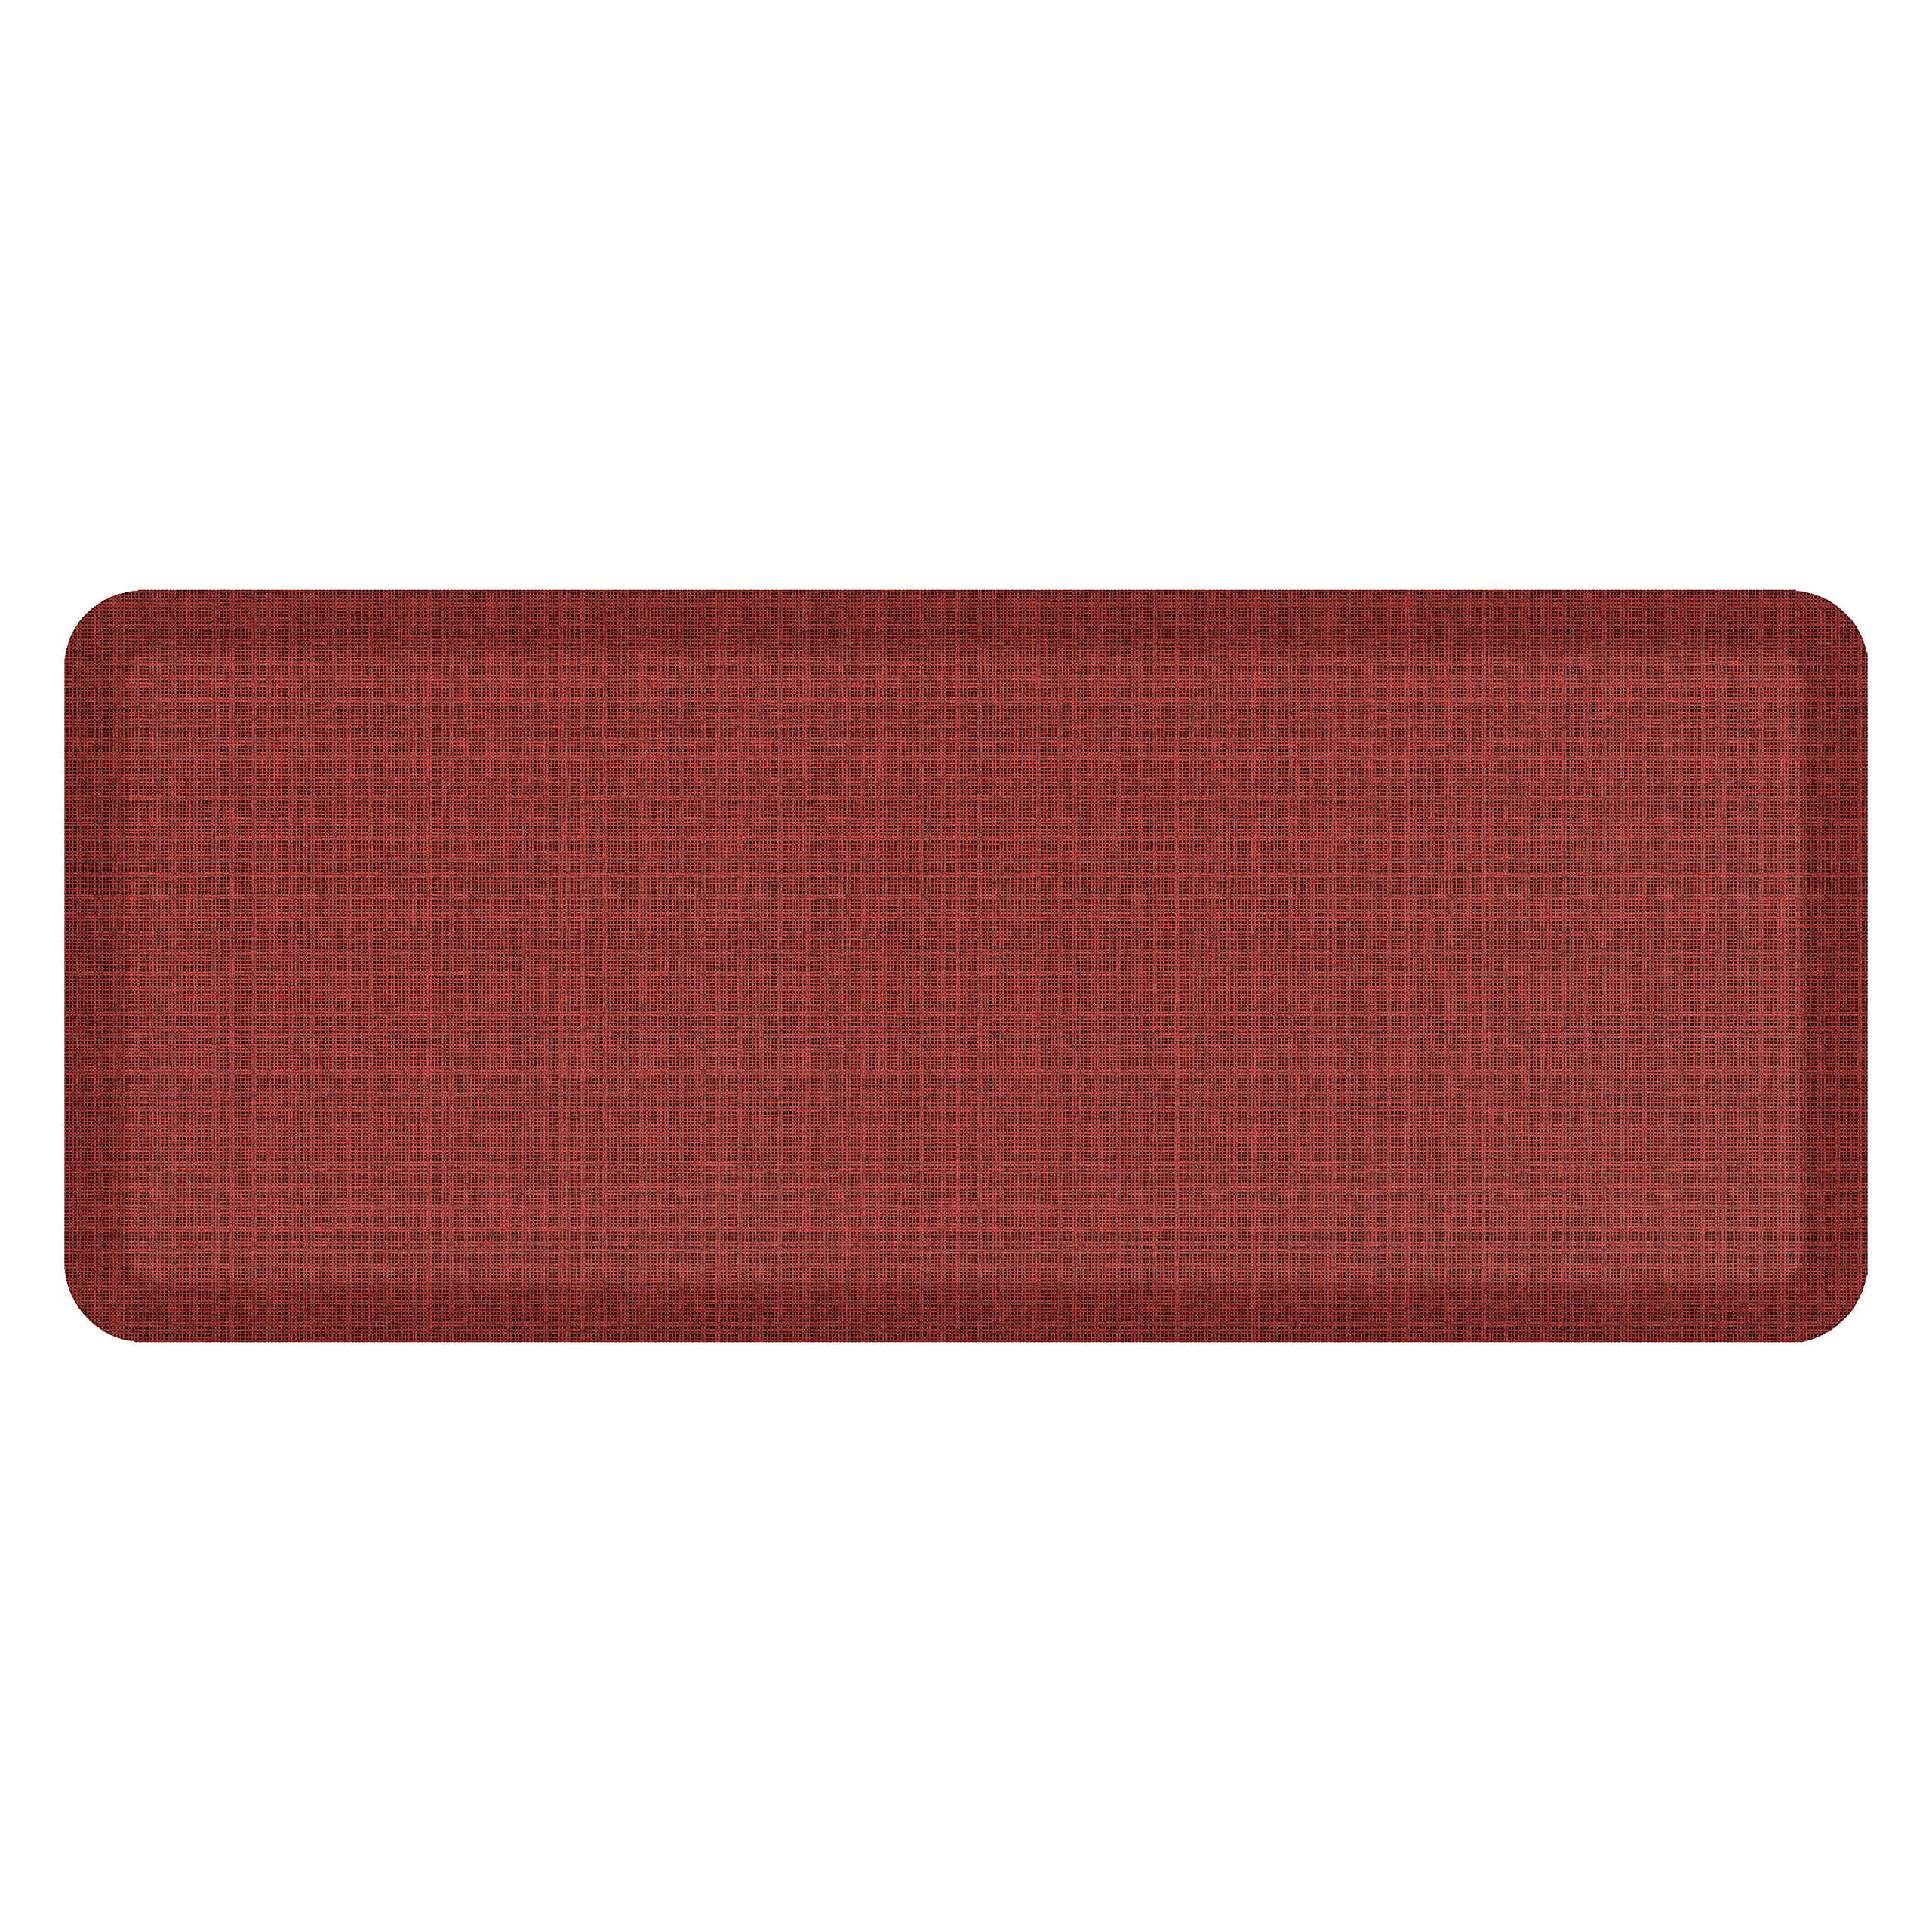 """NewLife by GelPro Anti-Fatigue Designer Comfort Kitchen Floor Mat, 20x48'', Tweed Barn Red Stain Resistant Surface with 3/4"""" Thick Ergo-foam Core for Health and Wellness"""